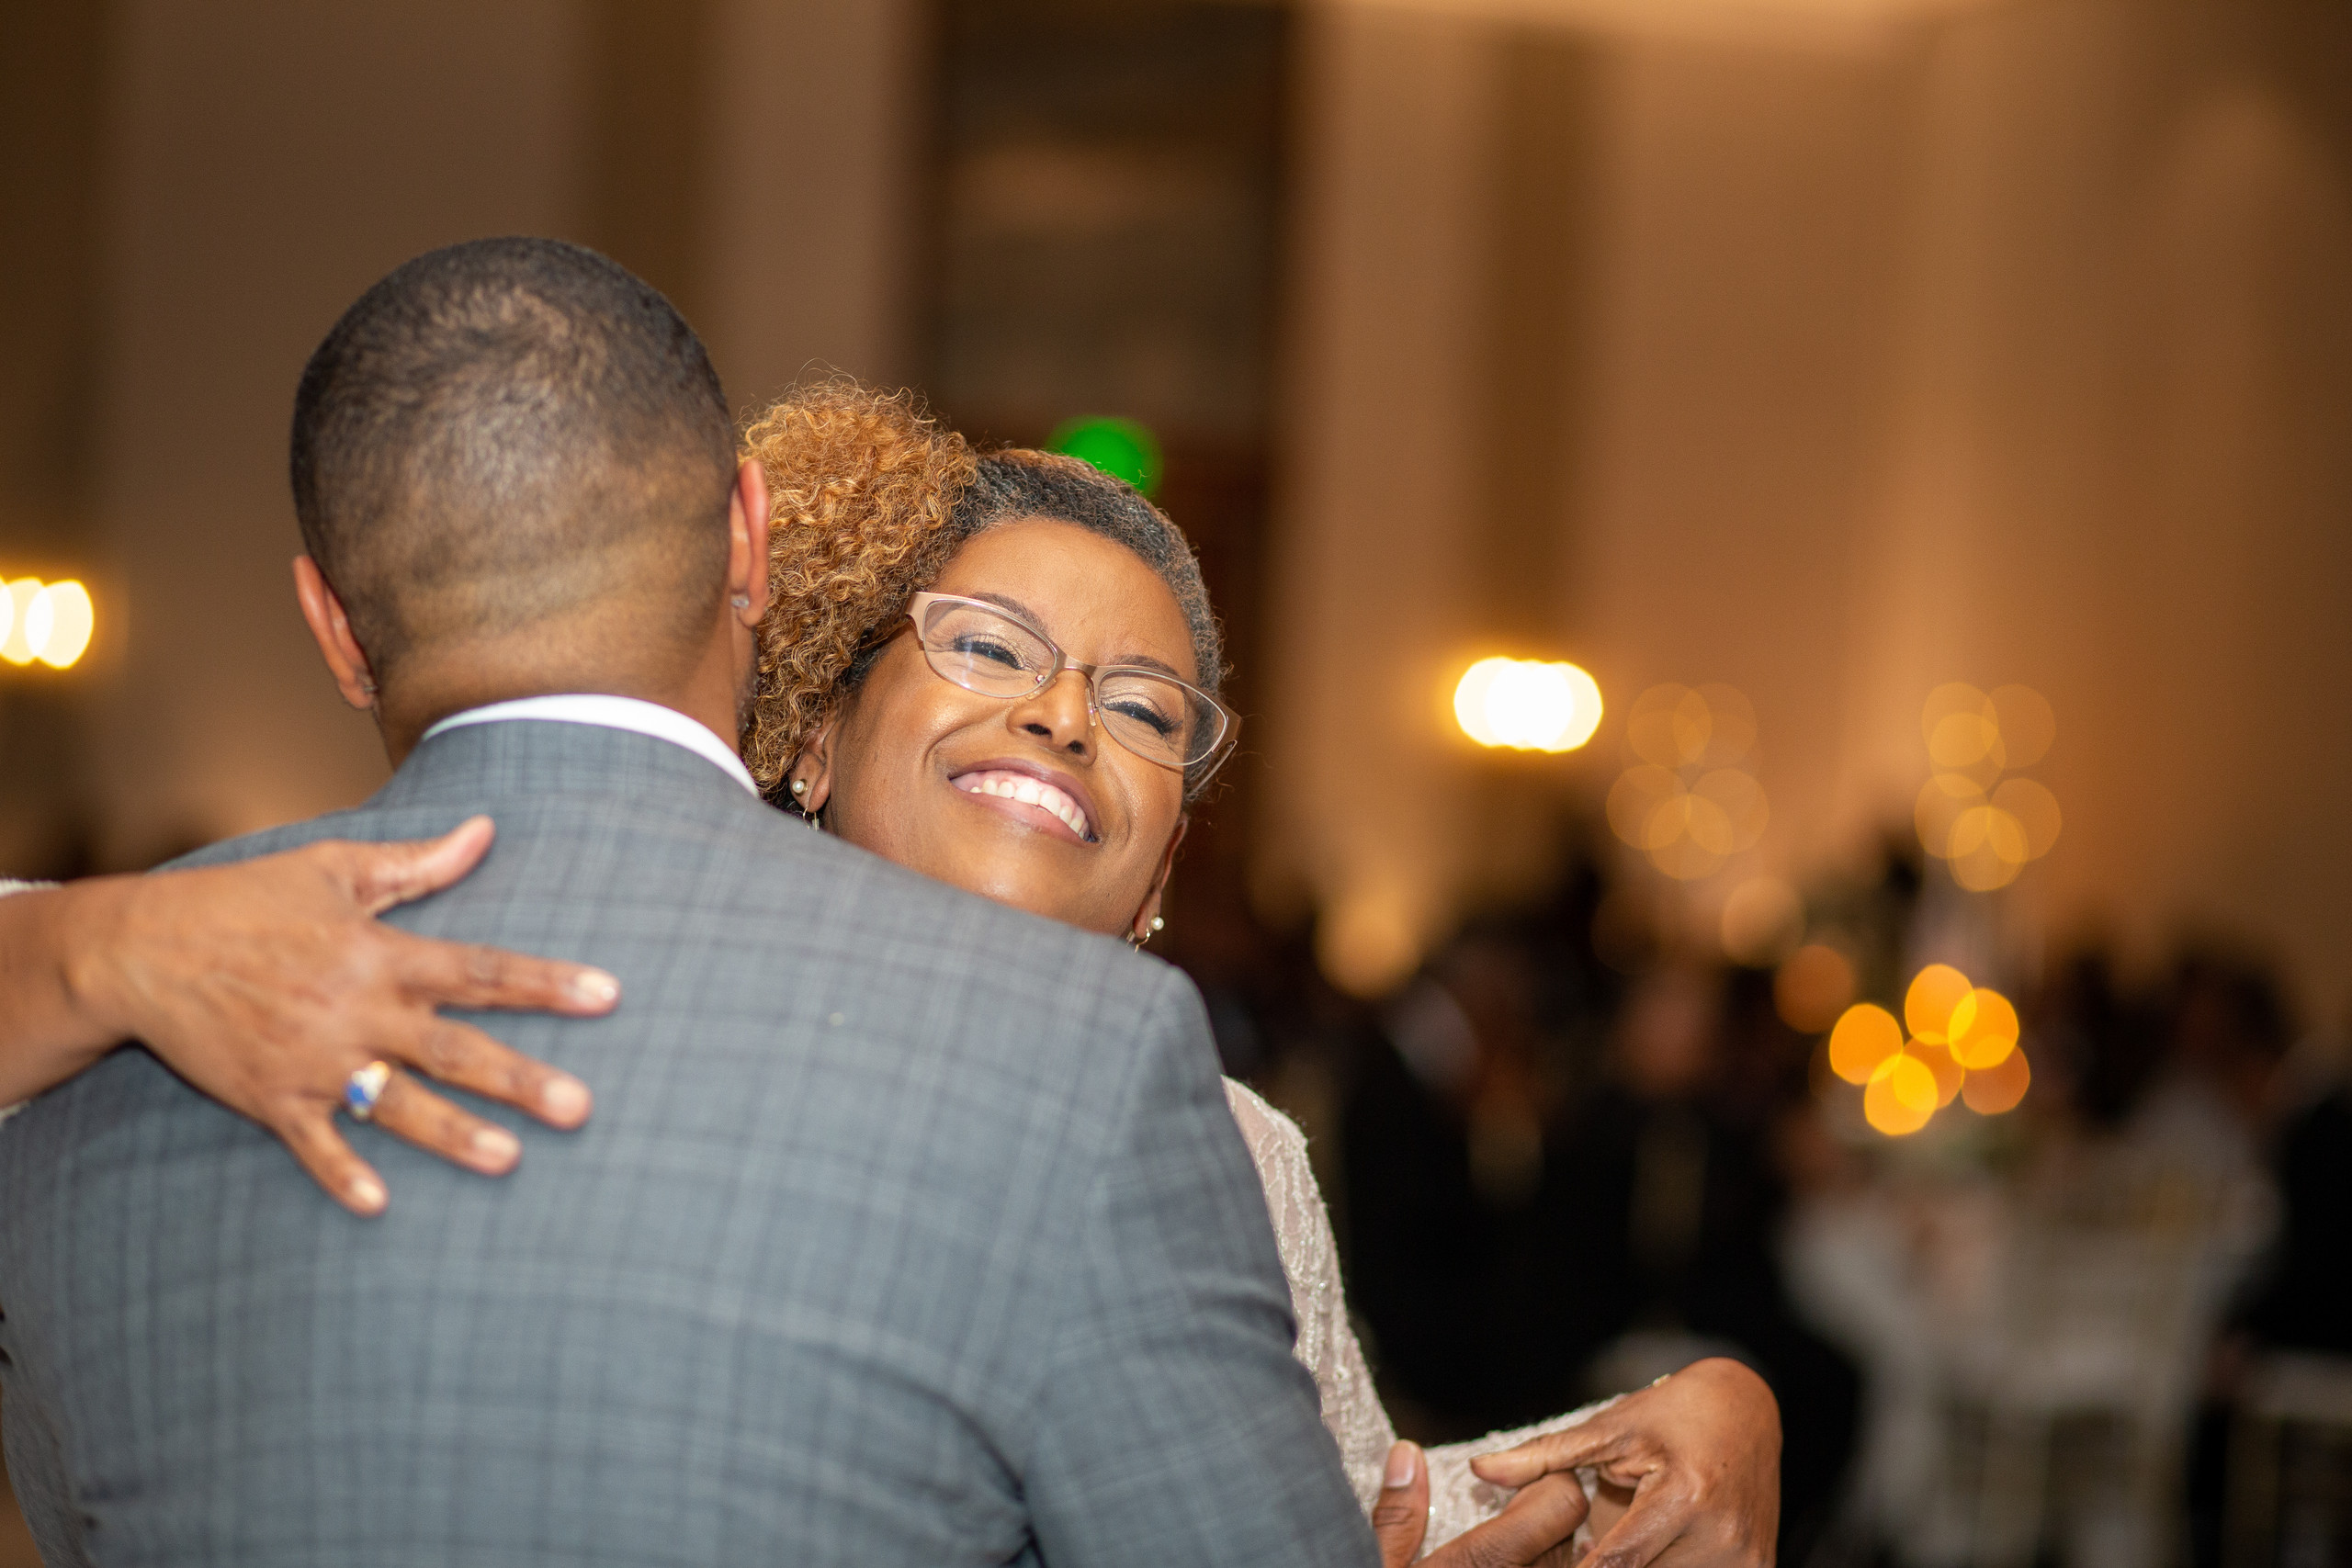 The mother of the groom shares pure joy while dancing with her son during the wedding reception at the Hilton Main in Norfolk, Virginia.